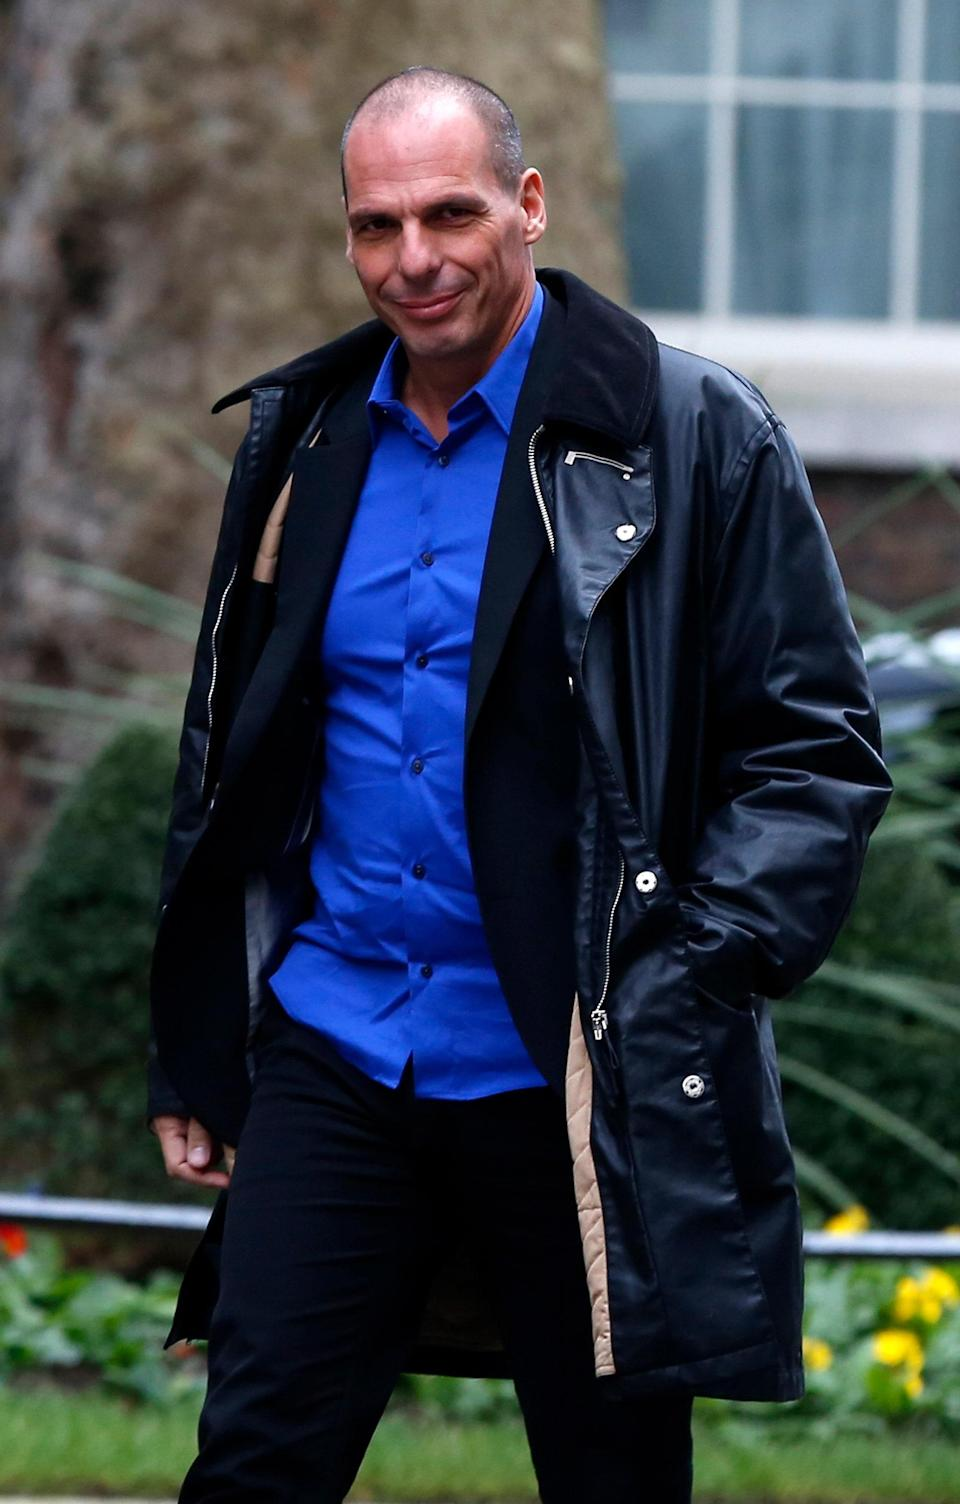 Former Finance Minister of Greece, Yanis Varoufakis, arrives for a meeting with Britain's Finance Minister, George Osborne, in London, February 2, 2015.